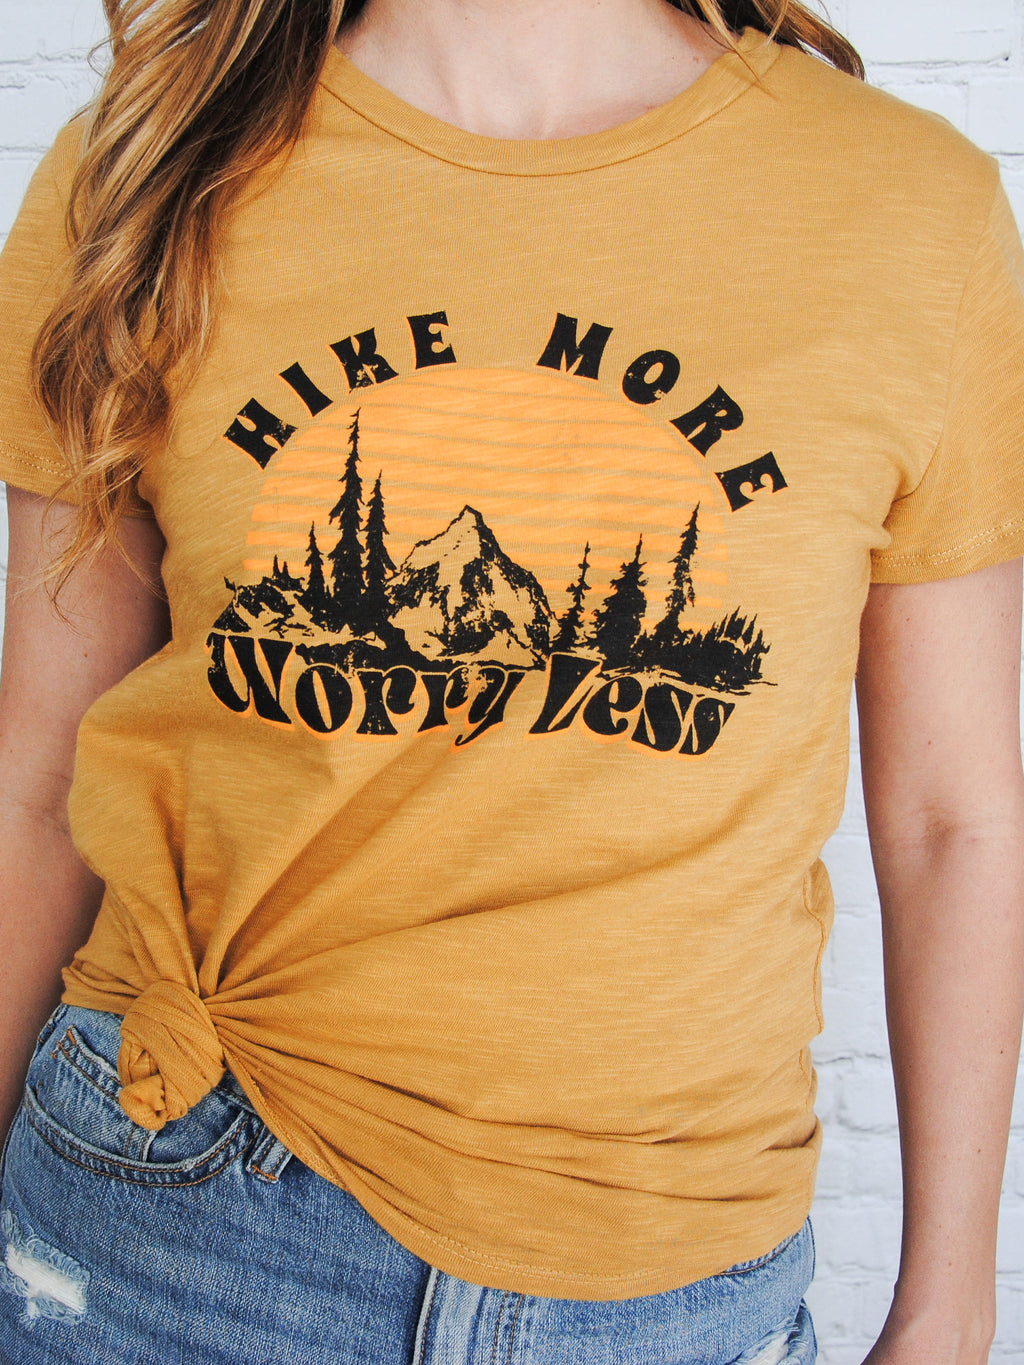 Take a Hike Graphic Tee - Mustard